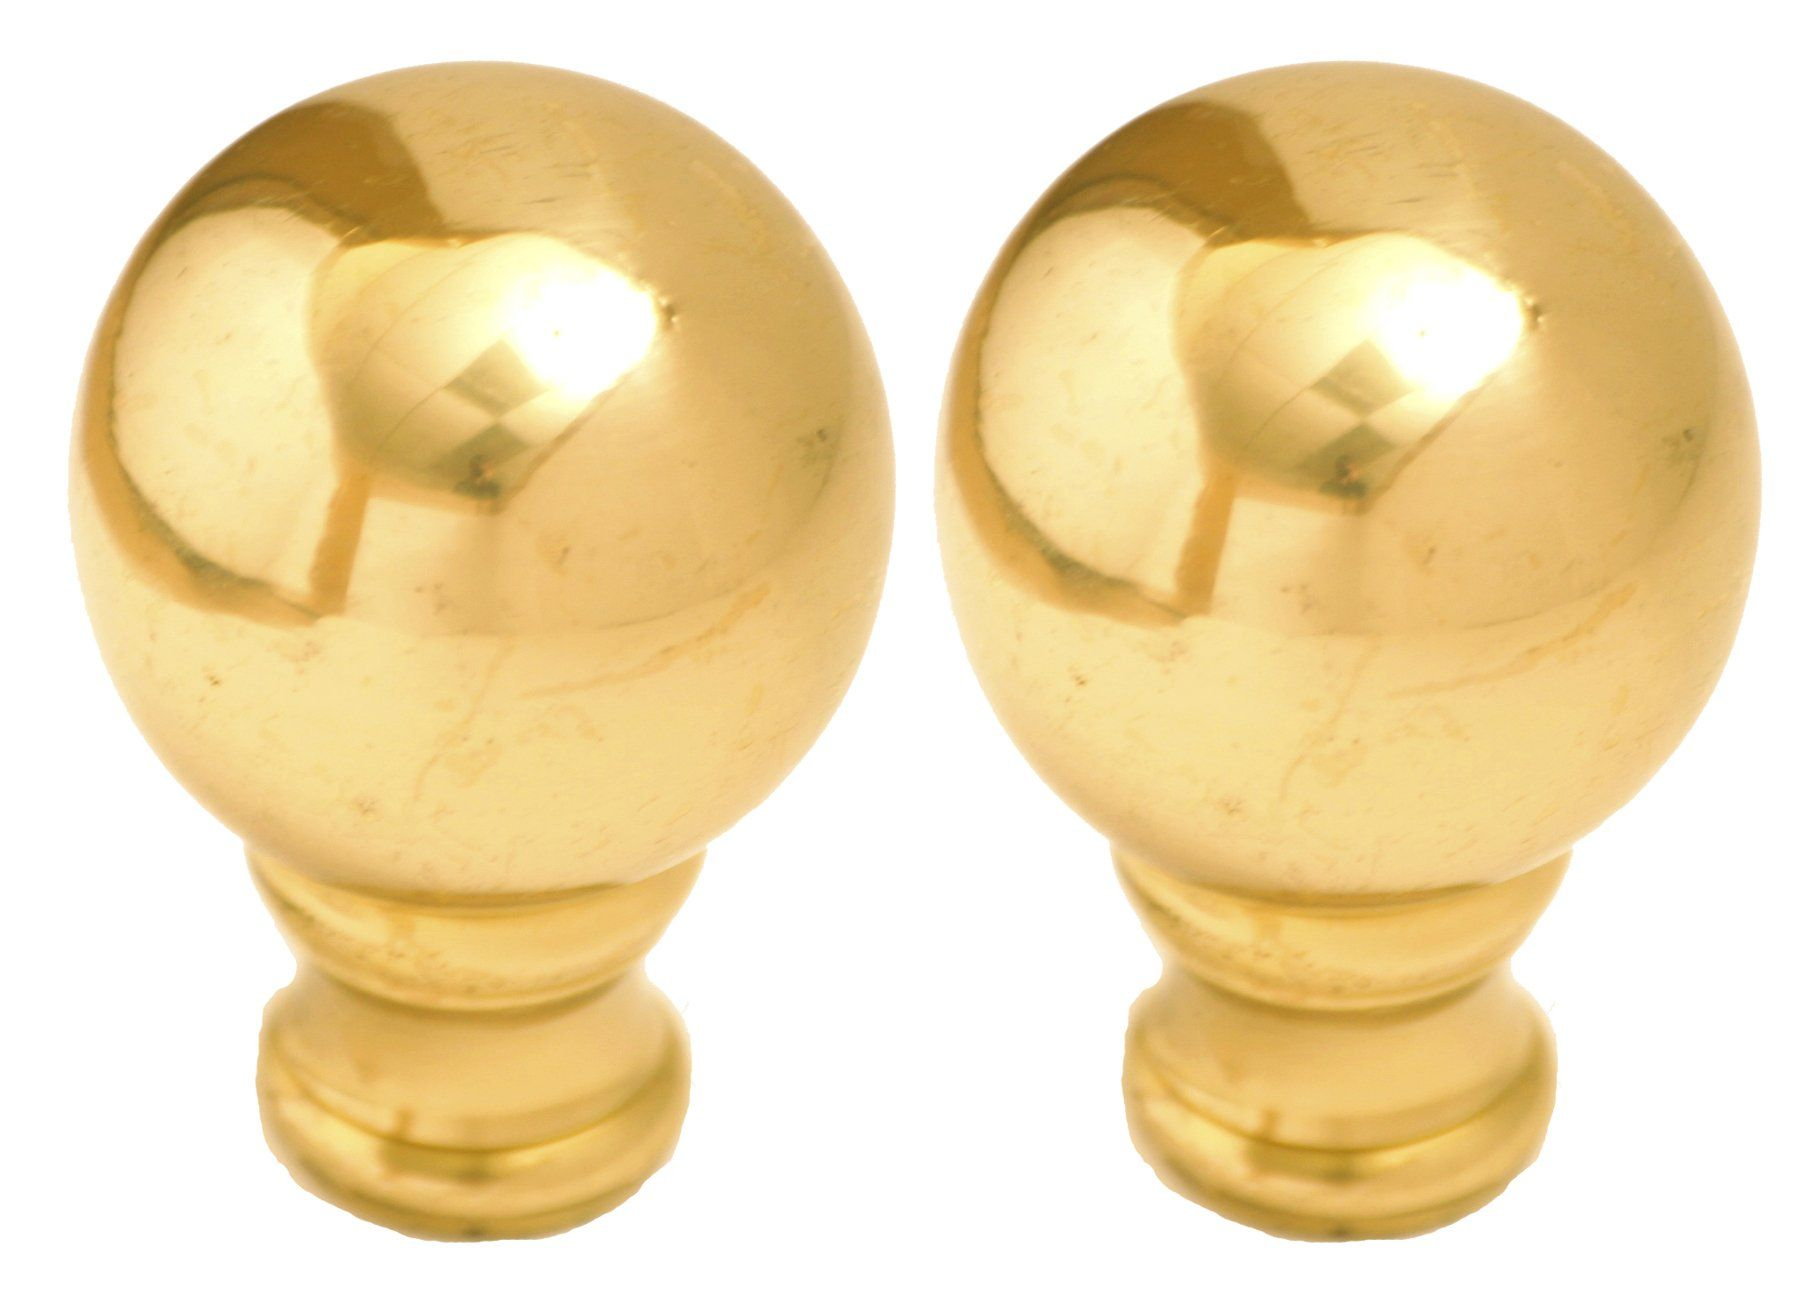 royal designs medium ball lamp finial polished brass, 2-pack, f